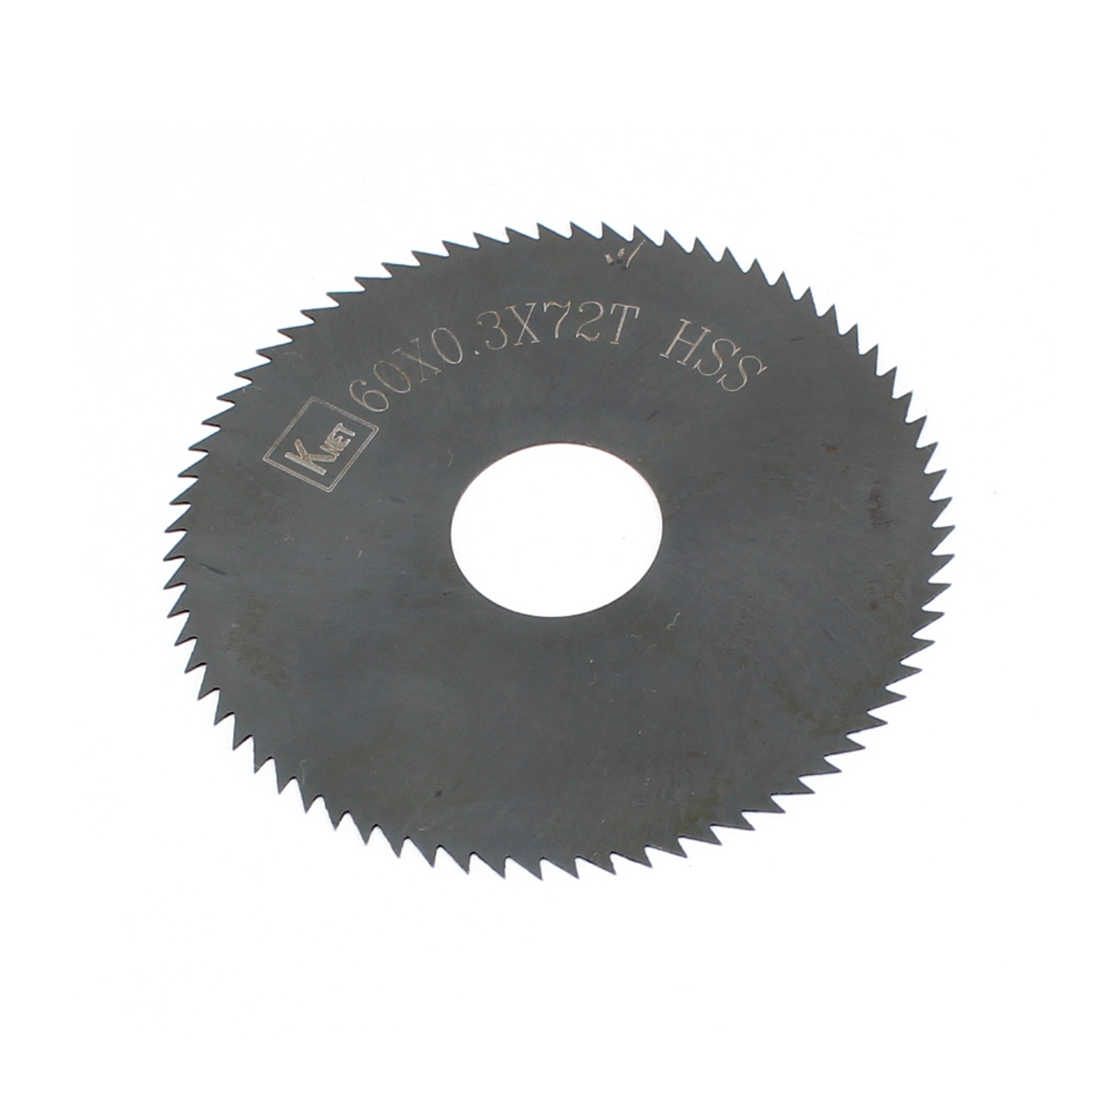 Unique Bargains HSS 72 Teeth 60mm x 0.3mm x 16mm Slitting Saw Cutting Tool